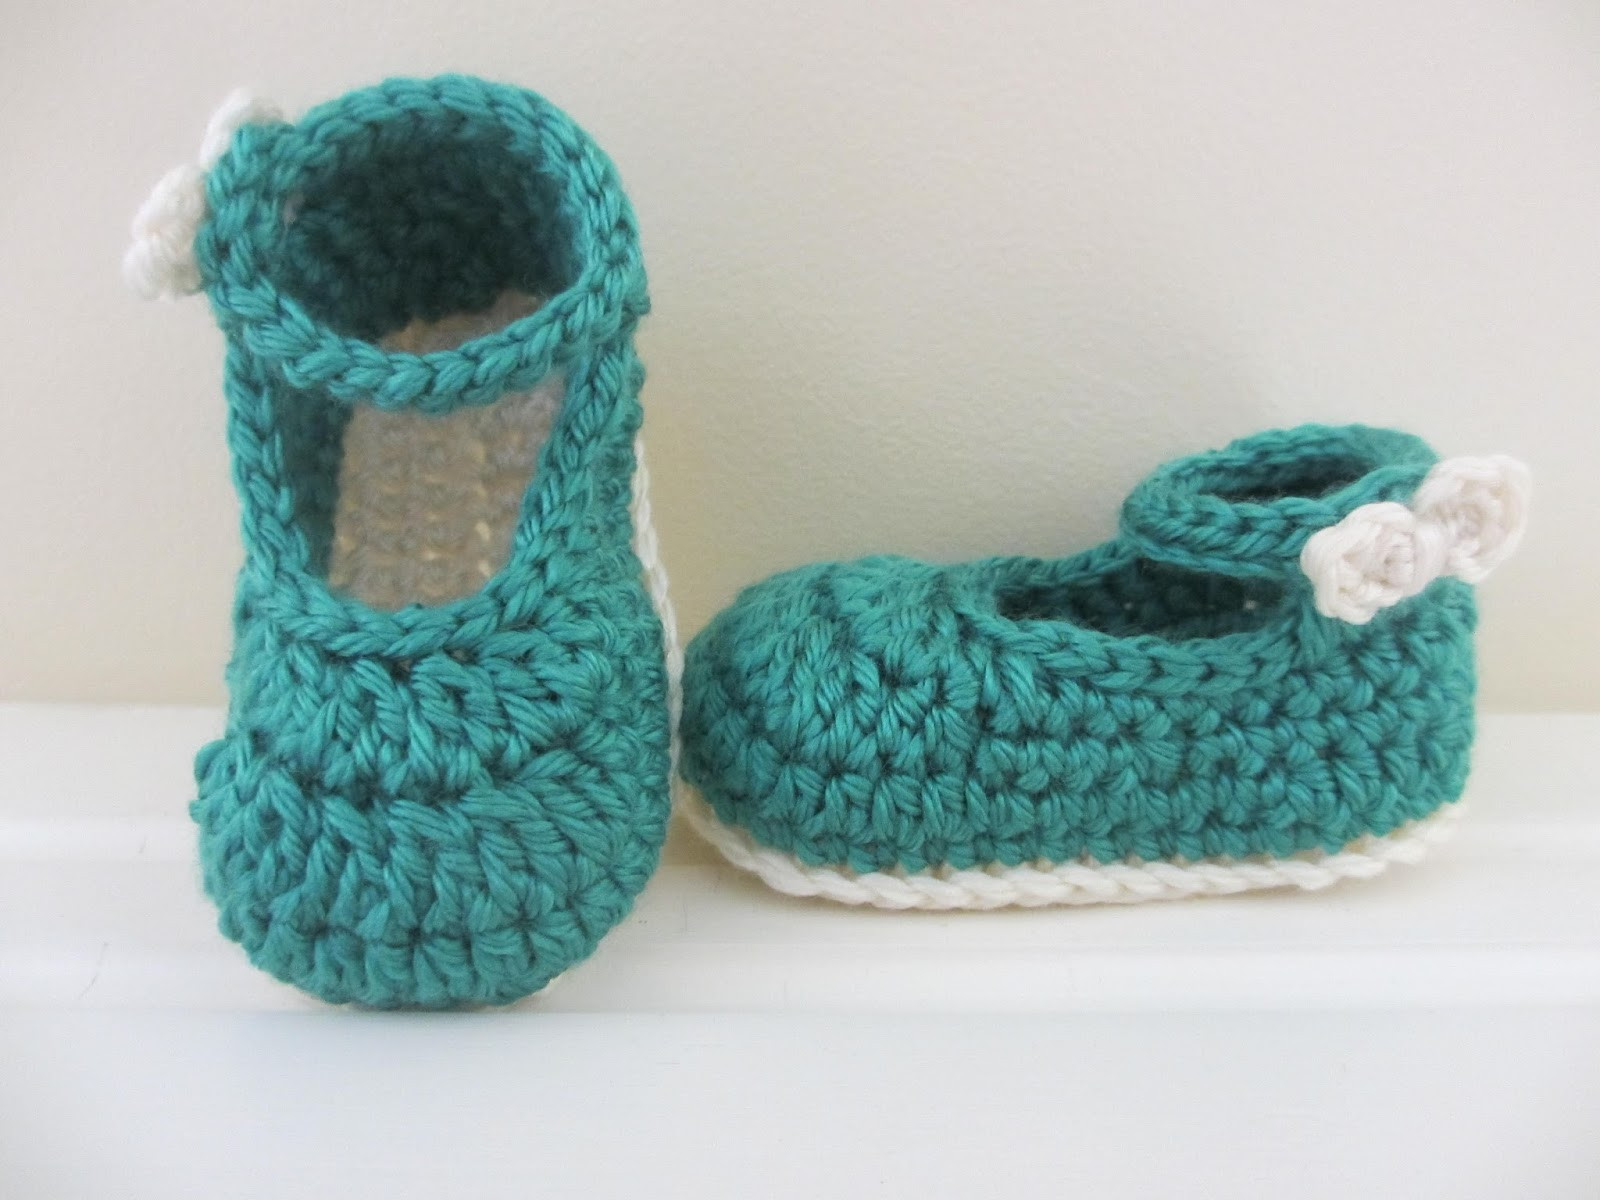 Inspirational the Perfect Diy Crochet Hello Kitty Slippers and 28 Free Crochet Mary Jane Slippers Of Amazing 41 Images Crochet Mary Jane Slippers